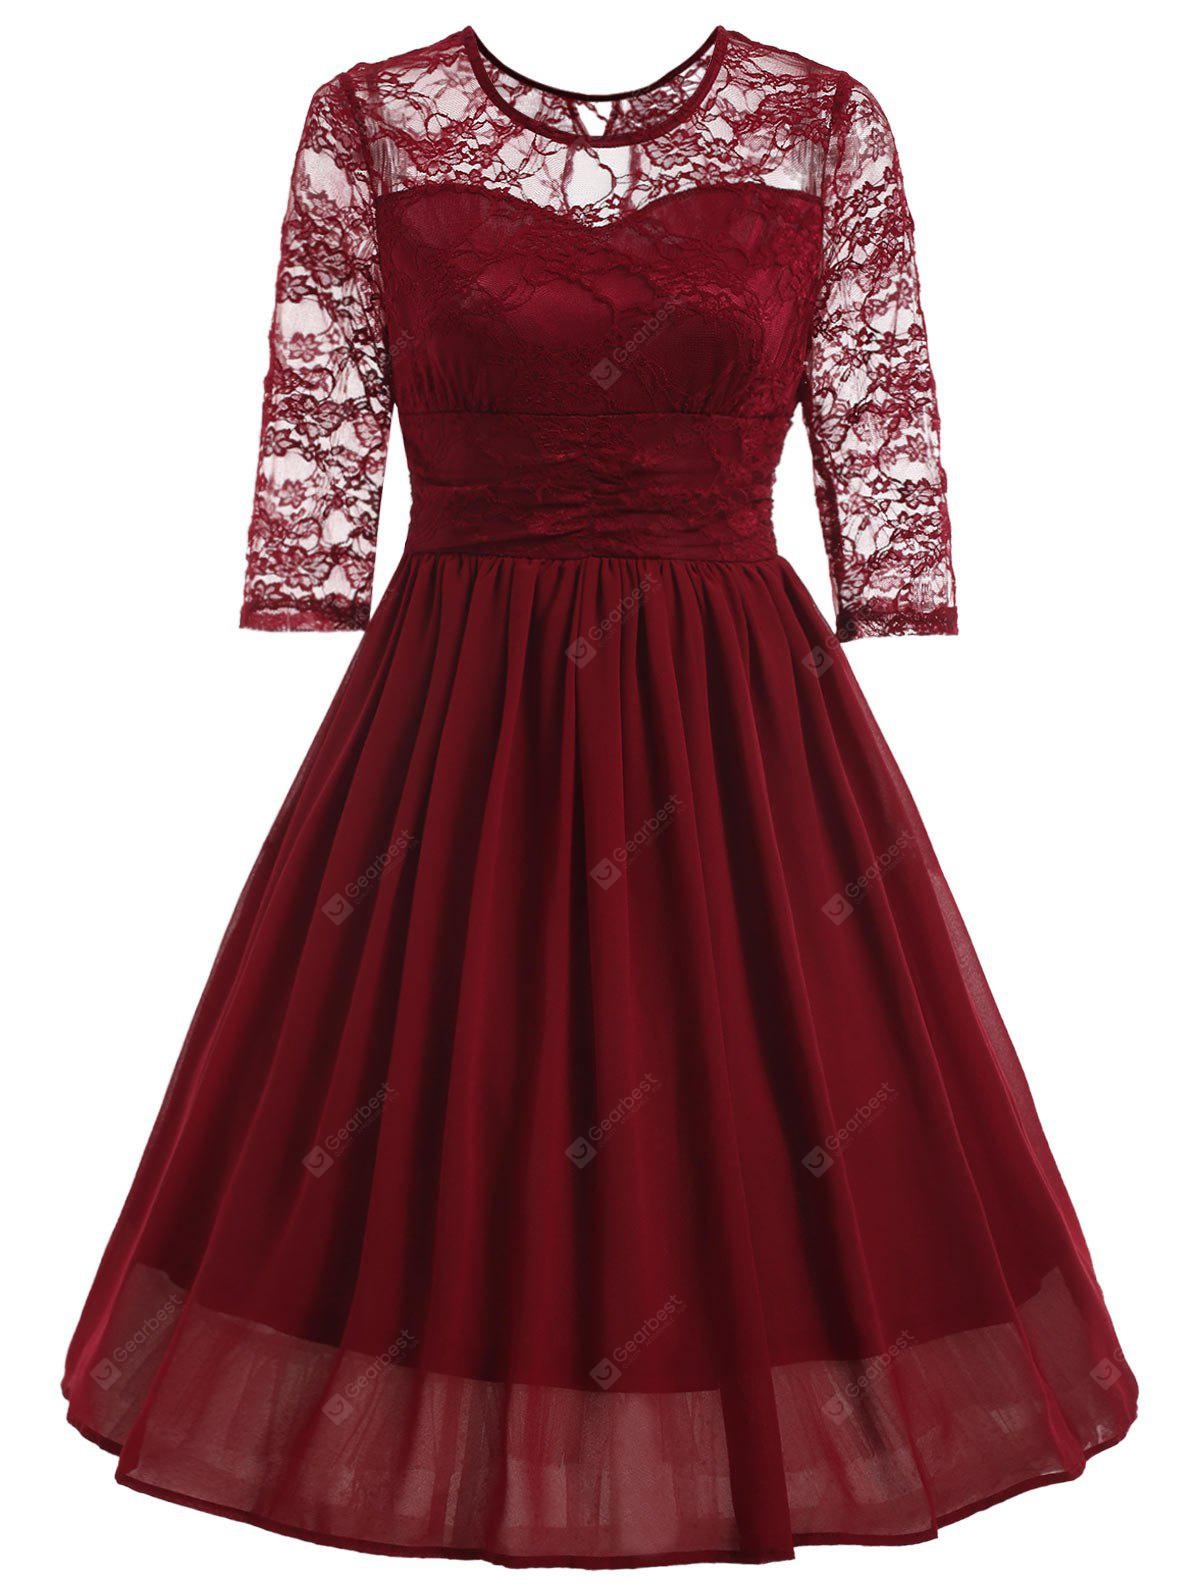 Vintage Lace Panel Fit and Flare Swing Dress